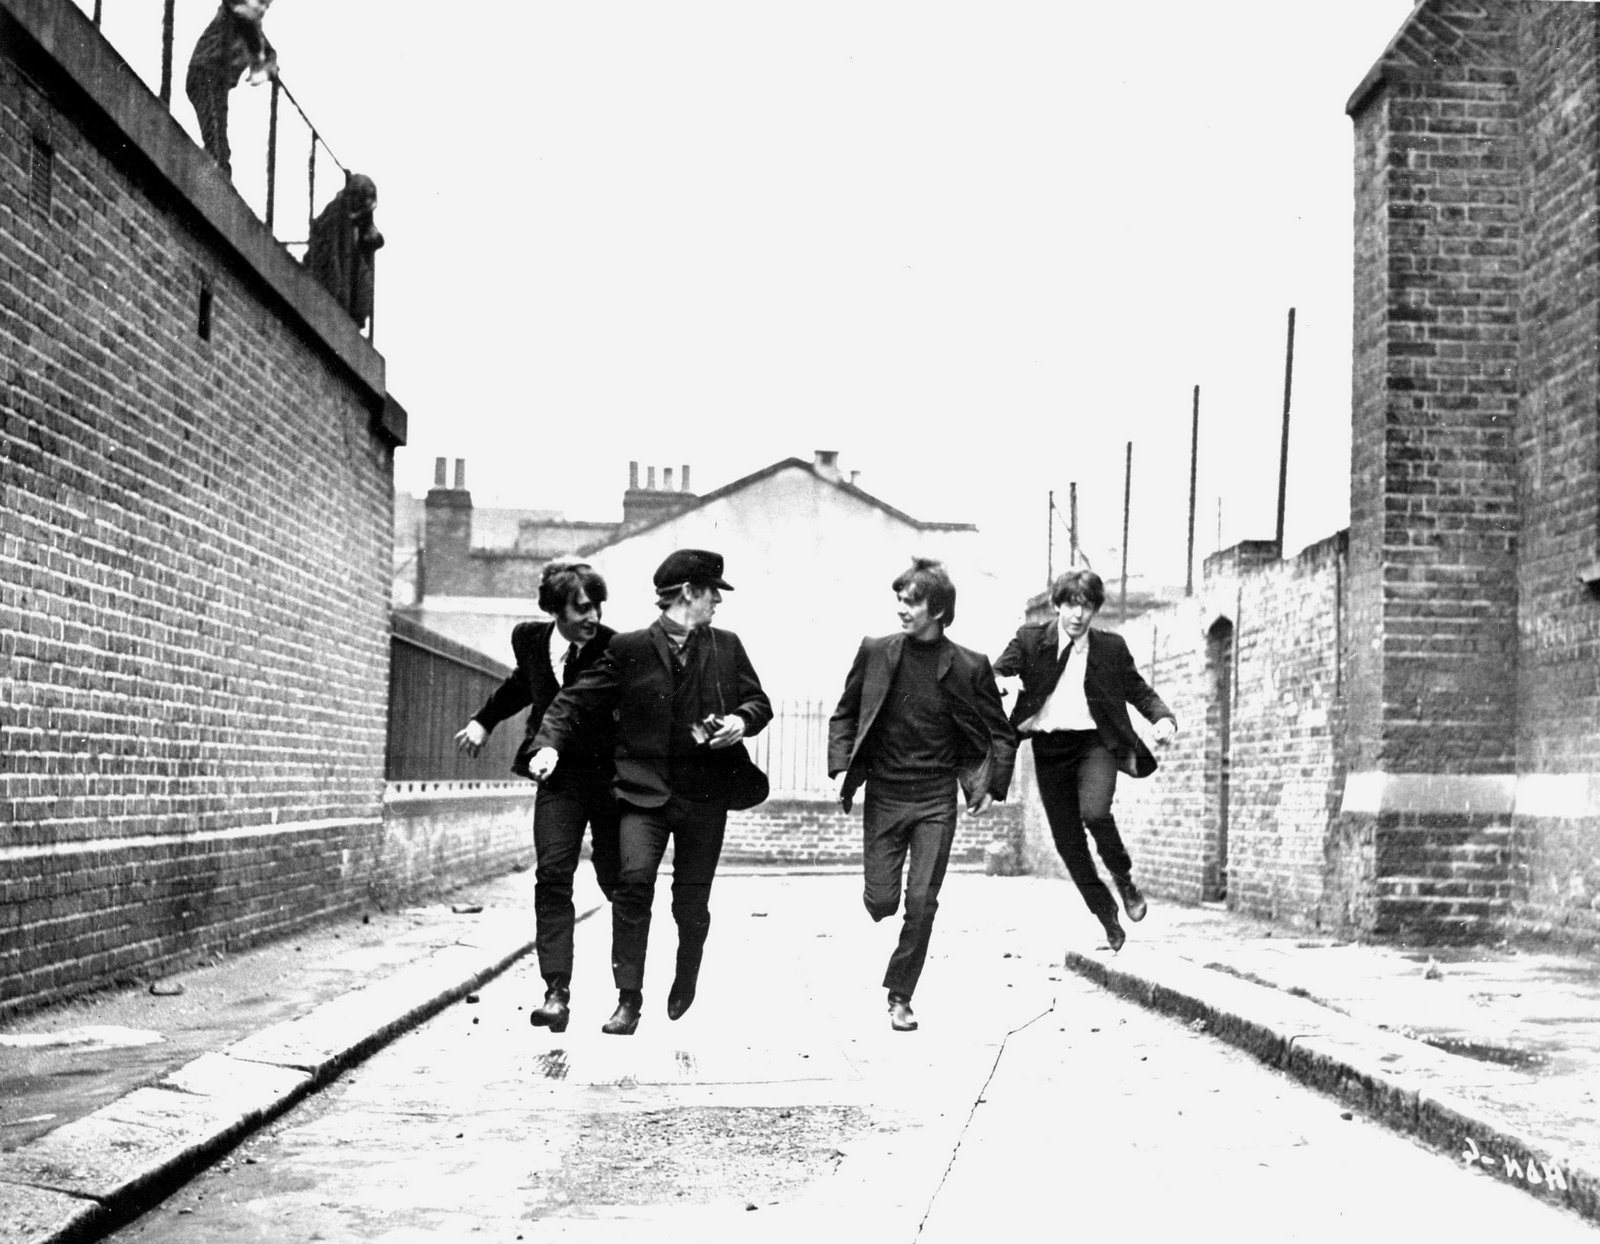 Movie Scene: Beatles Running on Street